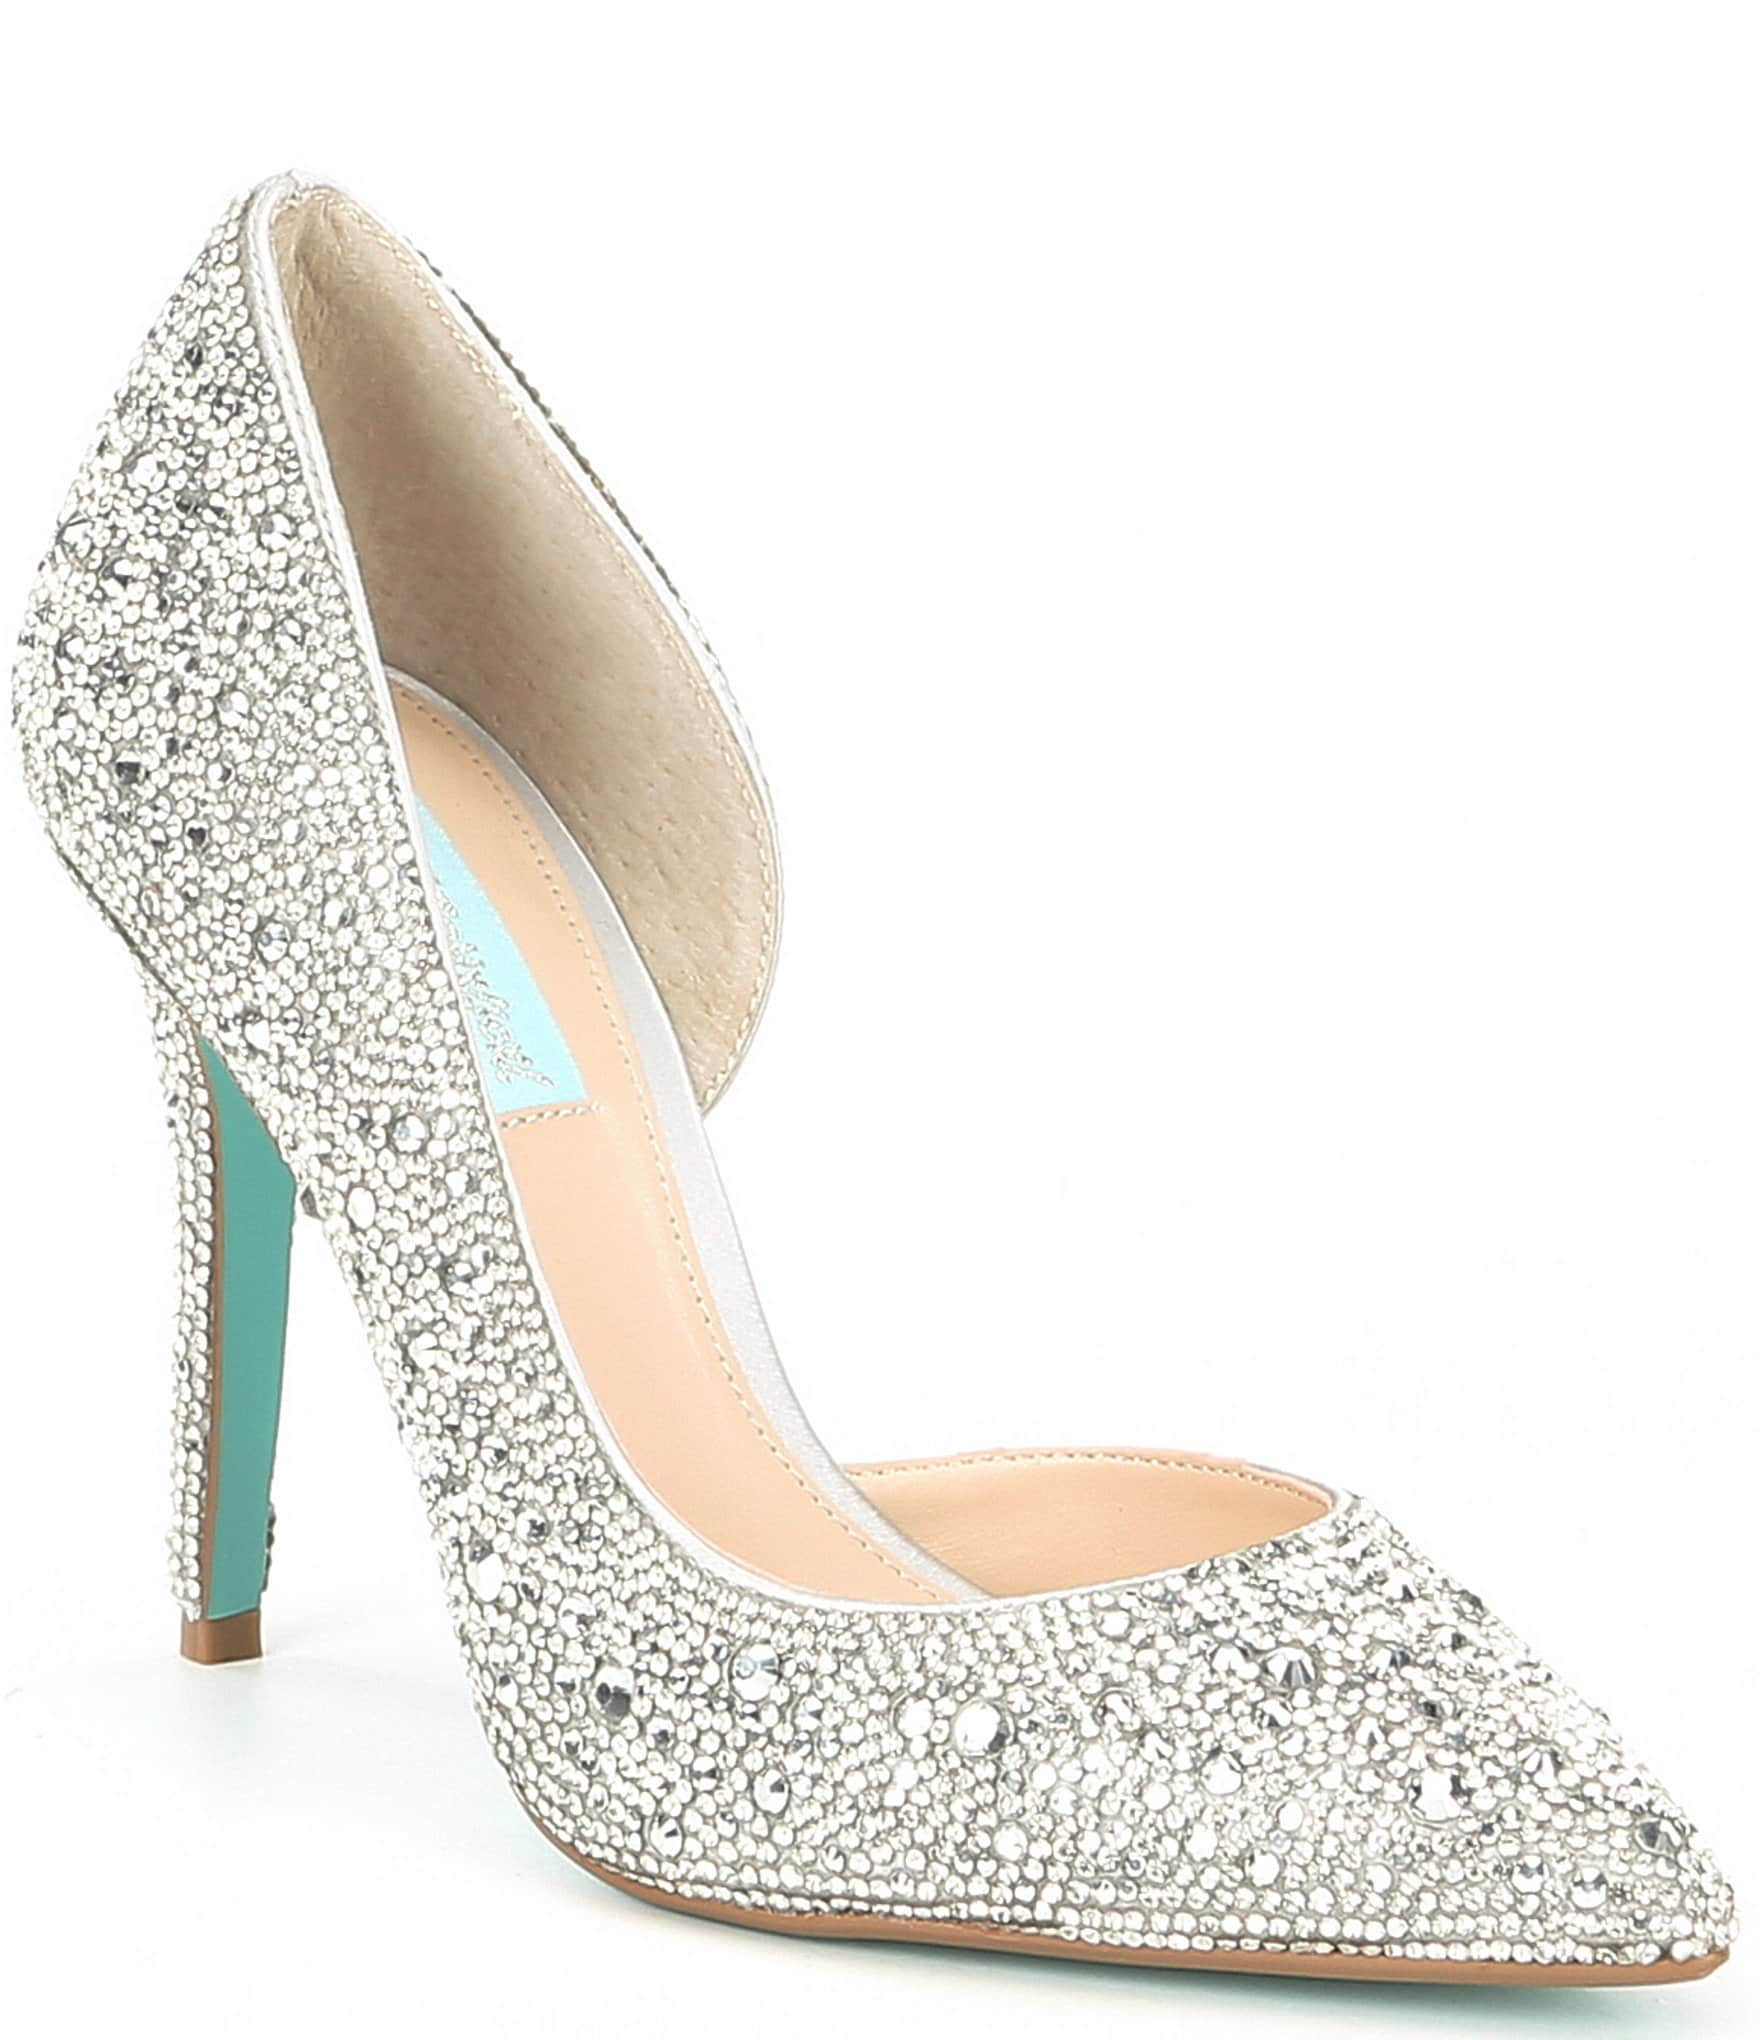 718ce95cf6 Women's Pumps | Dillard's